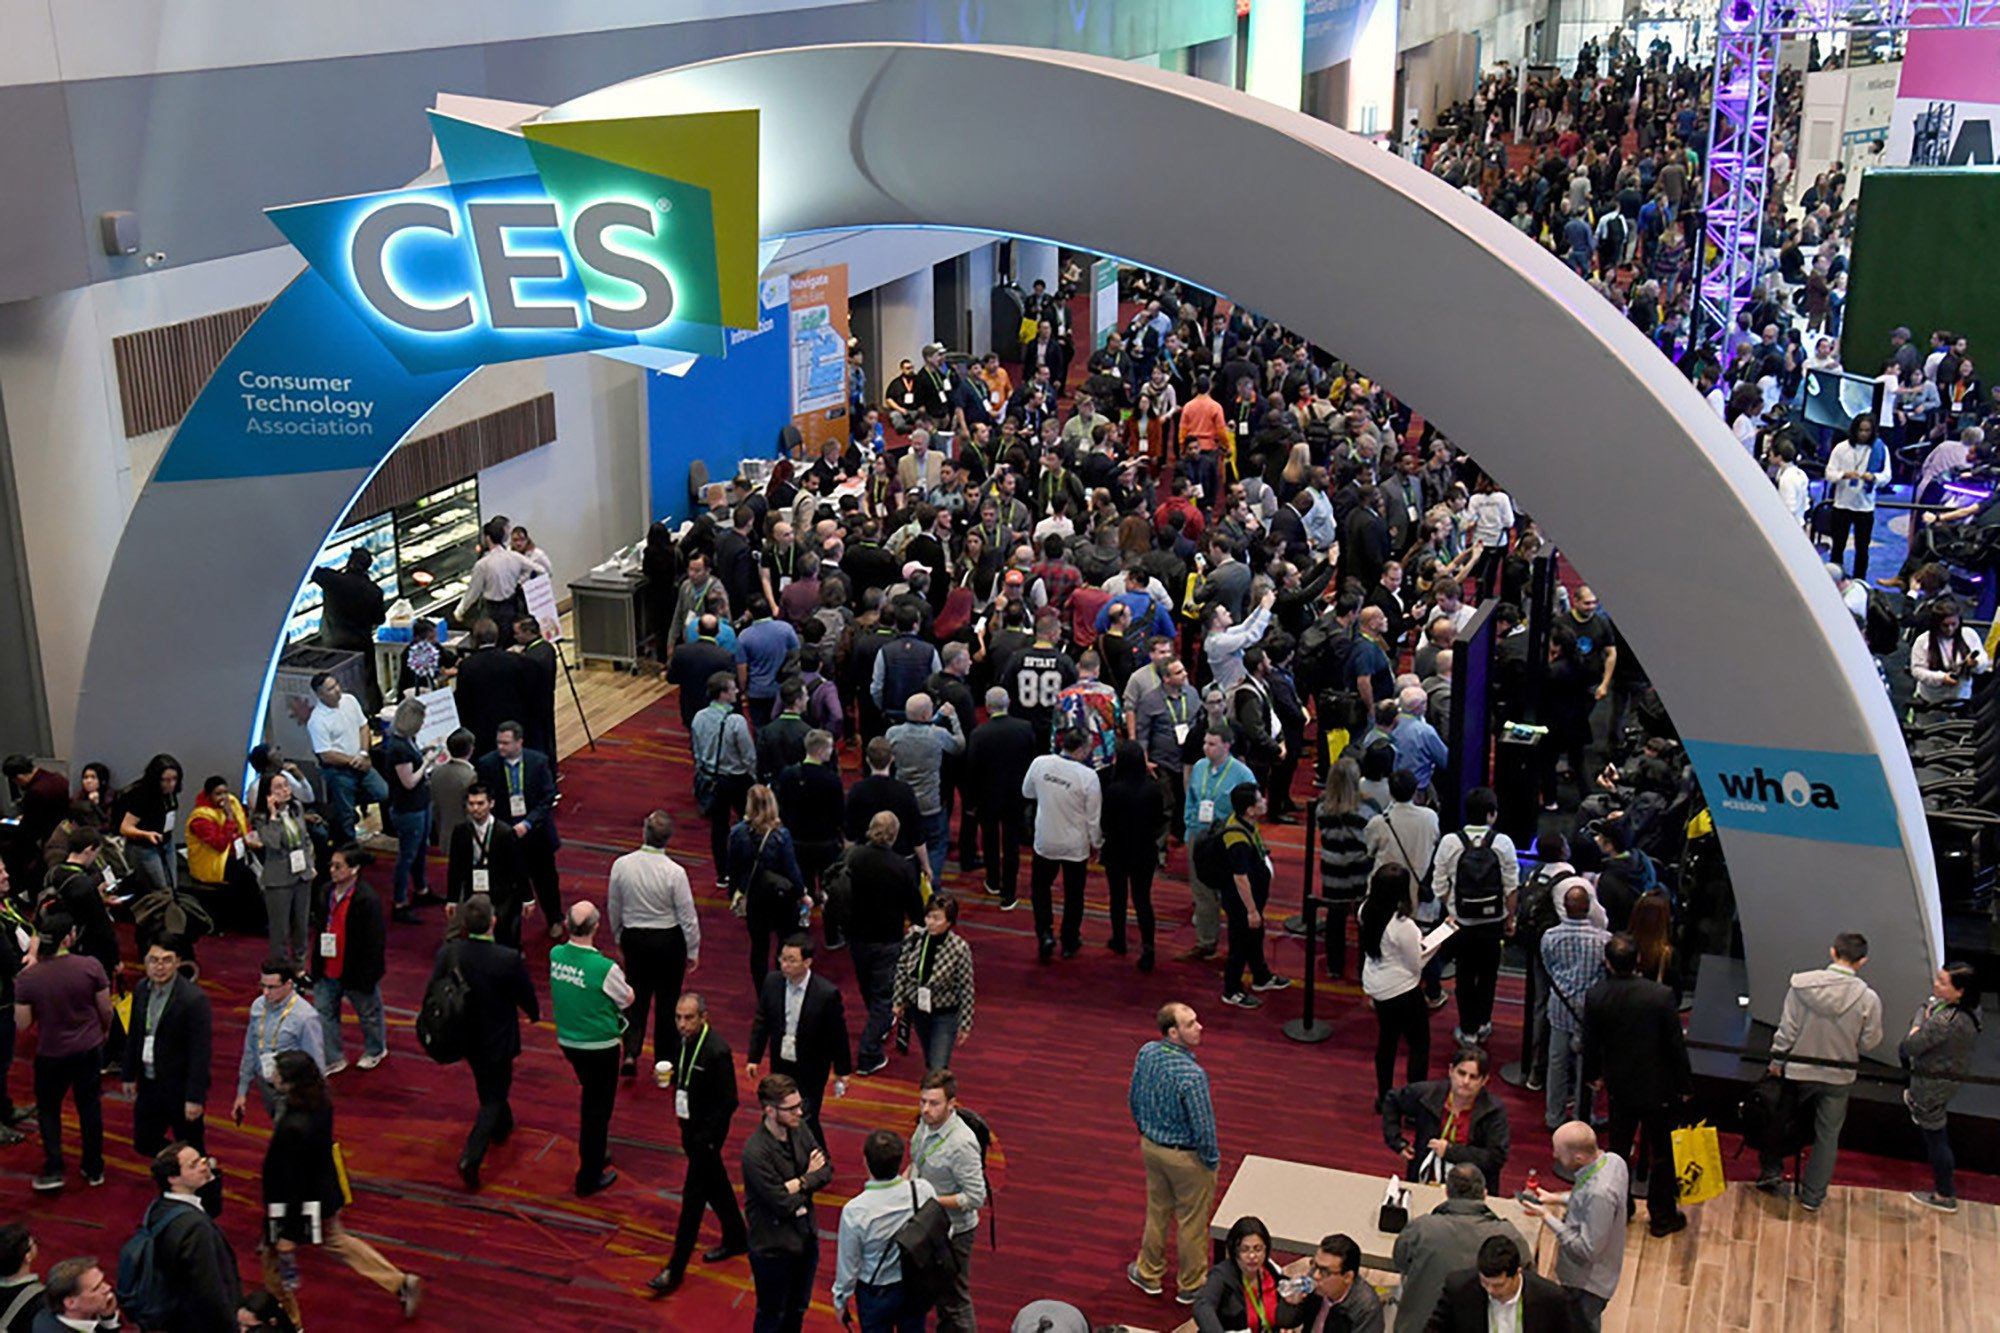 CES thinks eSports will be the next big thing